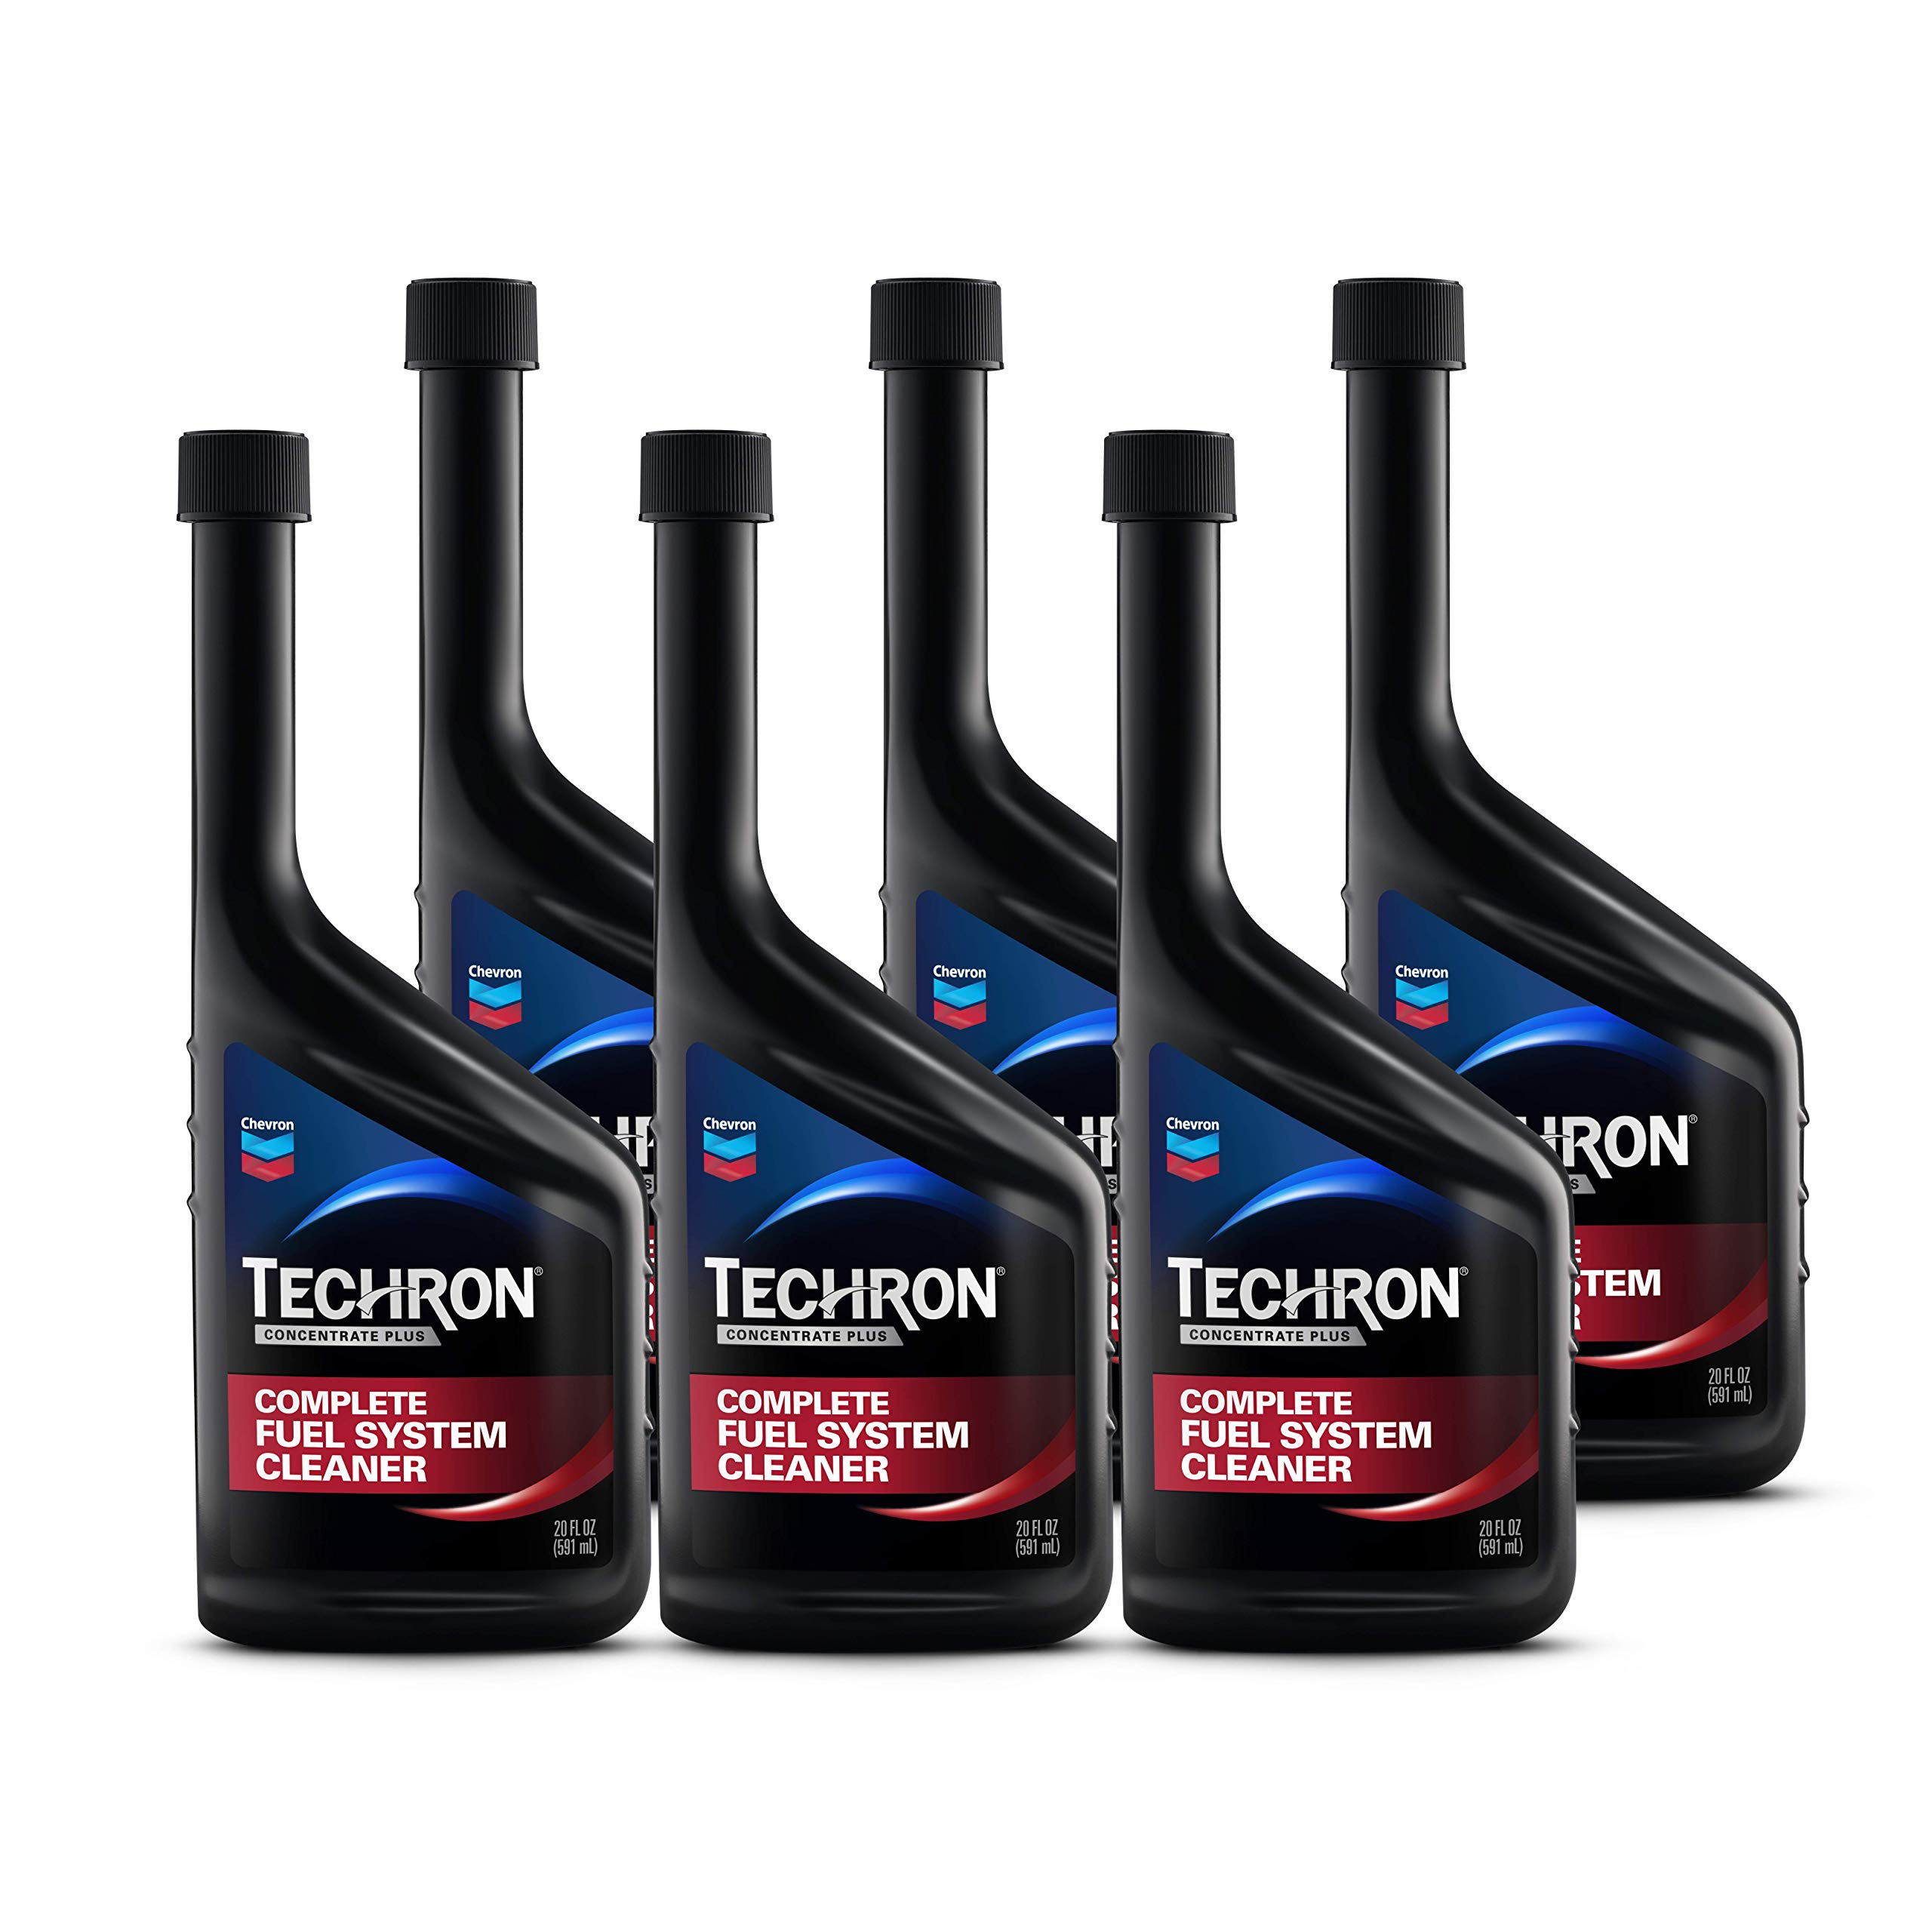 Chevron 65740-CASE Techron Concentrate Plus Fuel System Cleaner - 20 oz., (Pack of 6) by Chevron